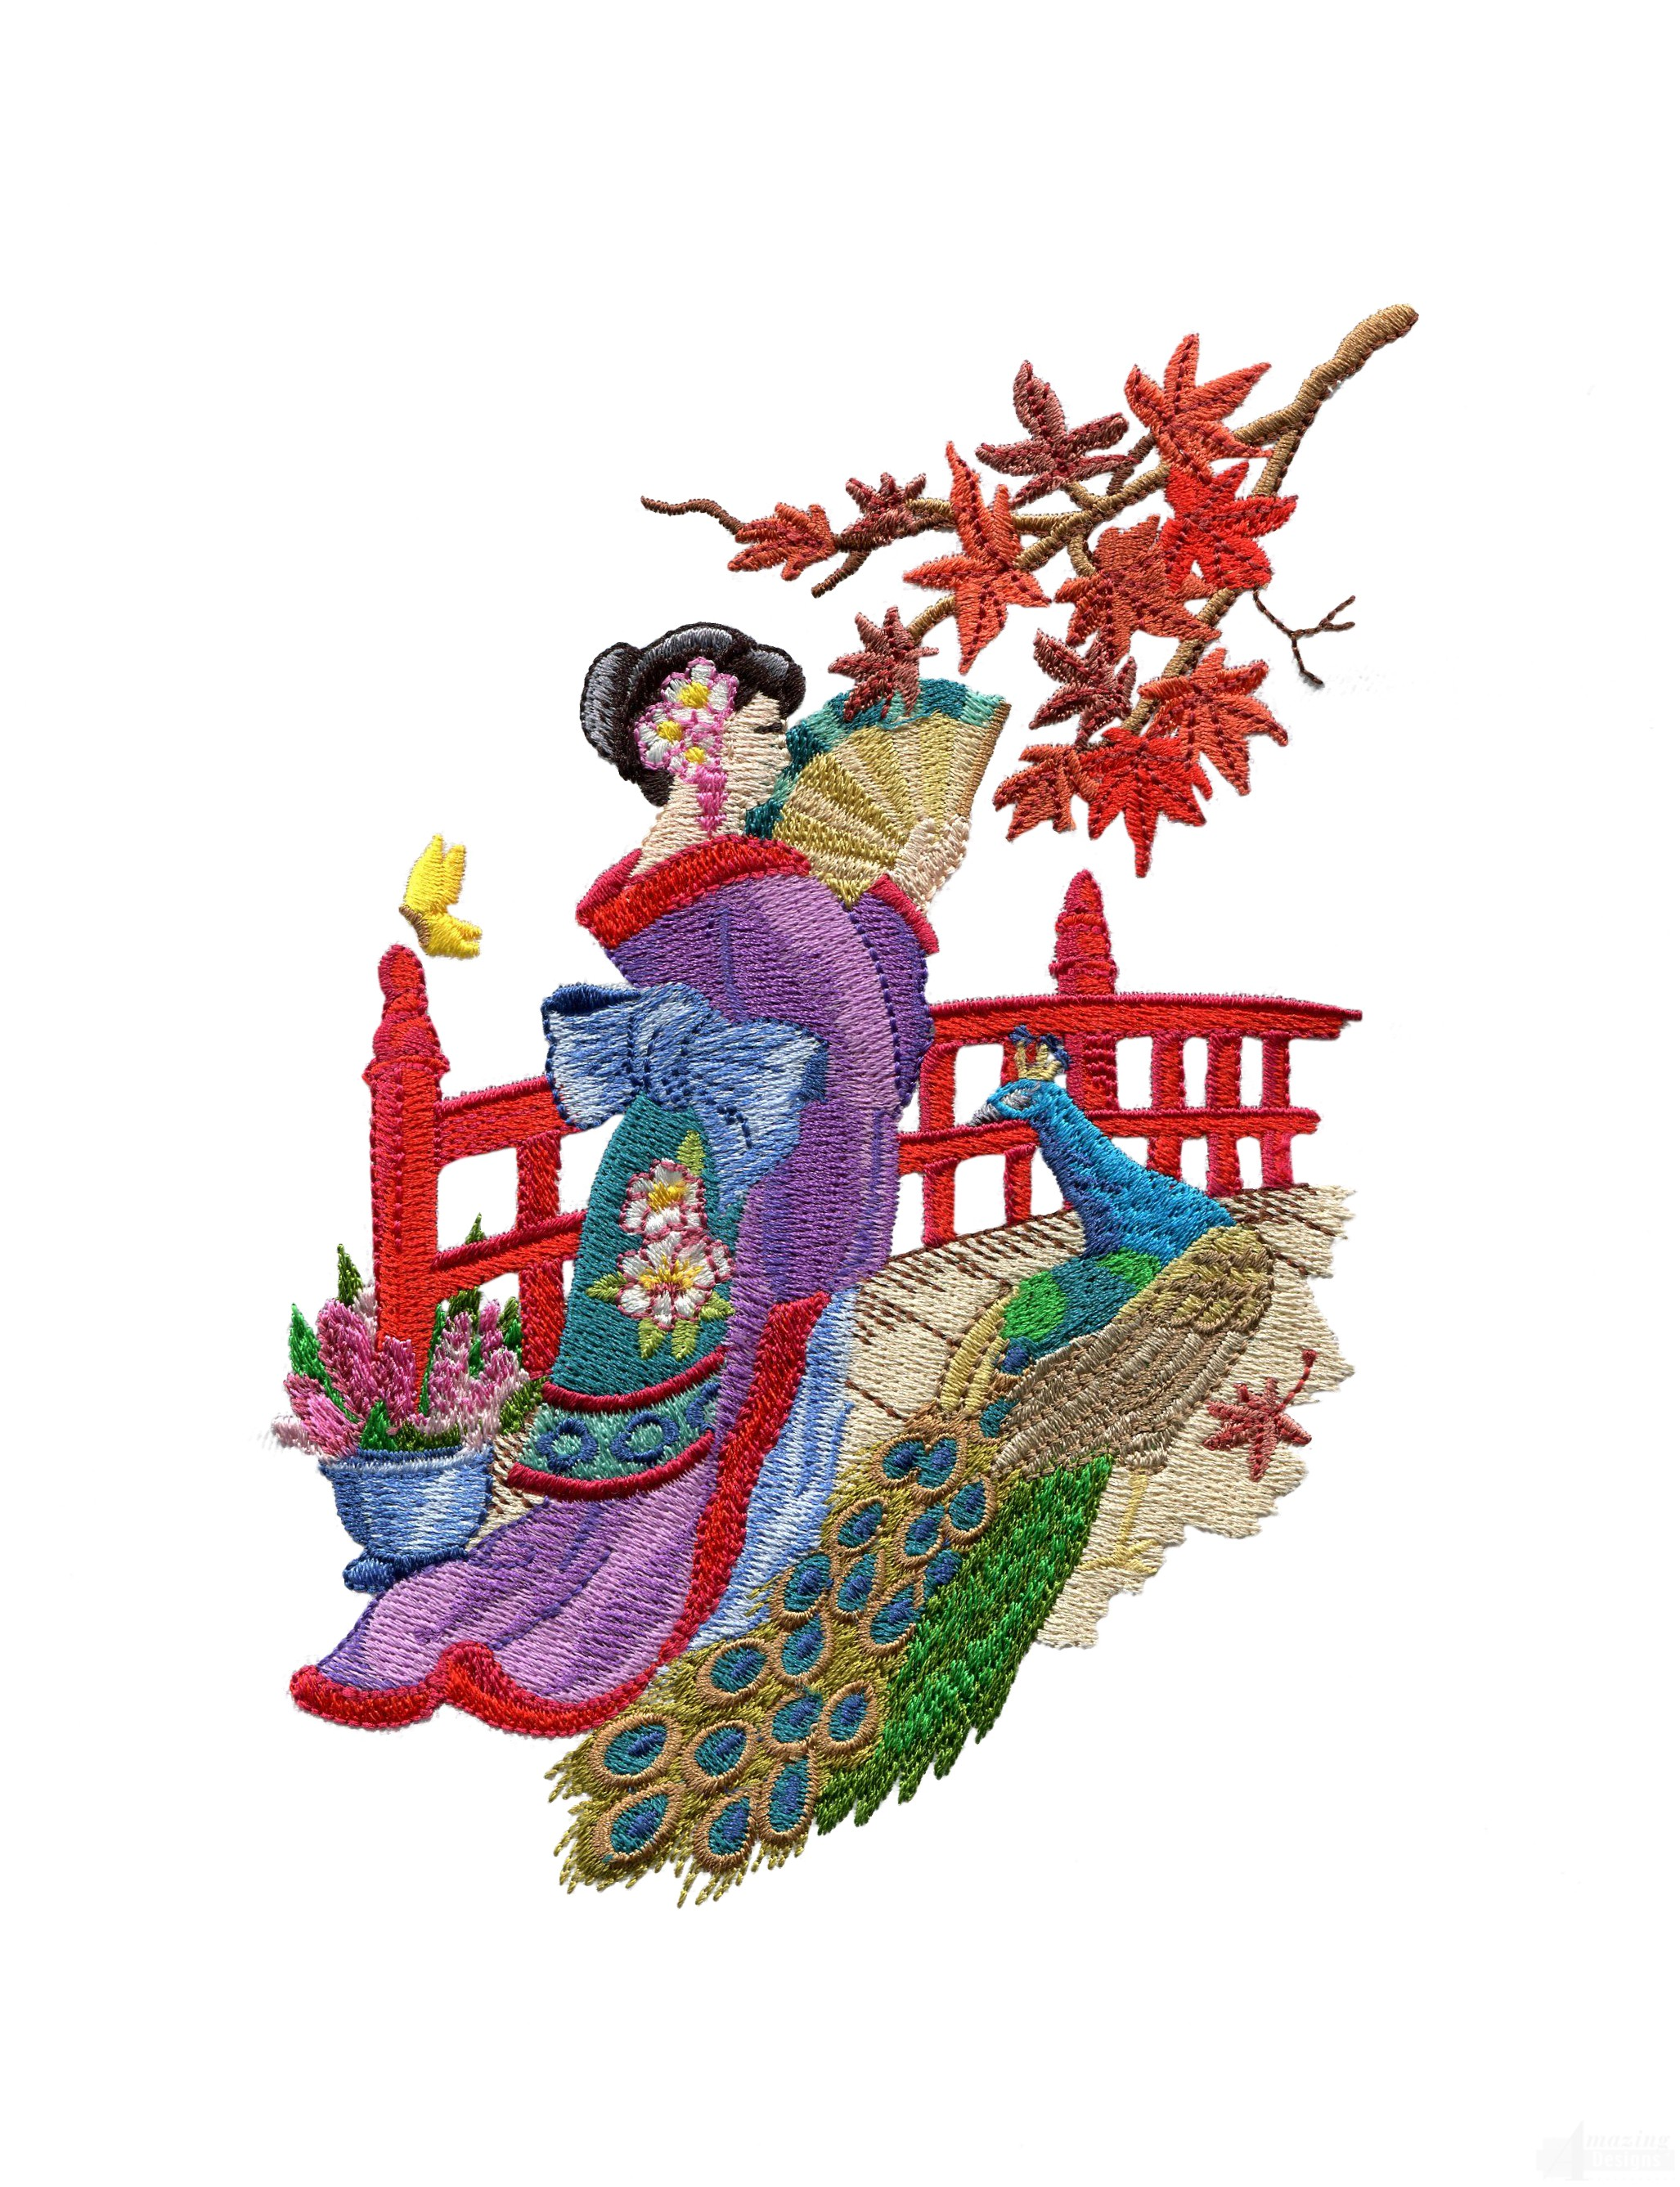 Swngg104 a geishas garden embroidery design for Garden embroidery designs free